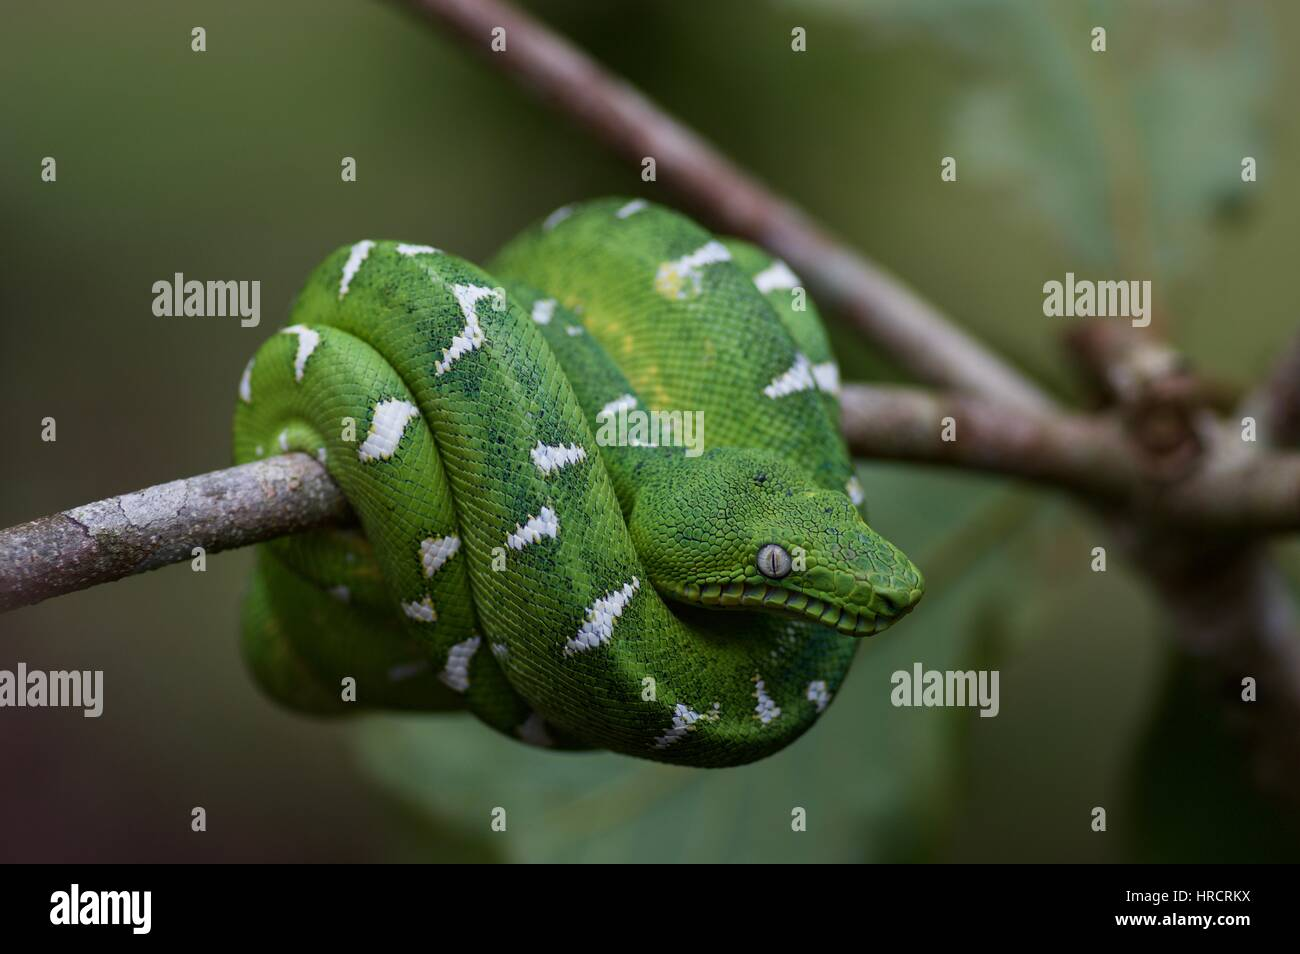 Emerald Tree Boa Stock Photos & Emerald Tree Boa Stock Images - Alamy